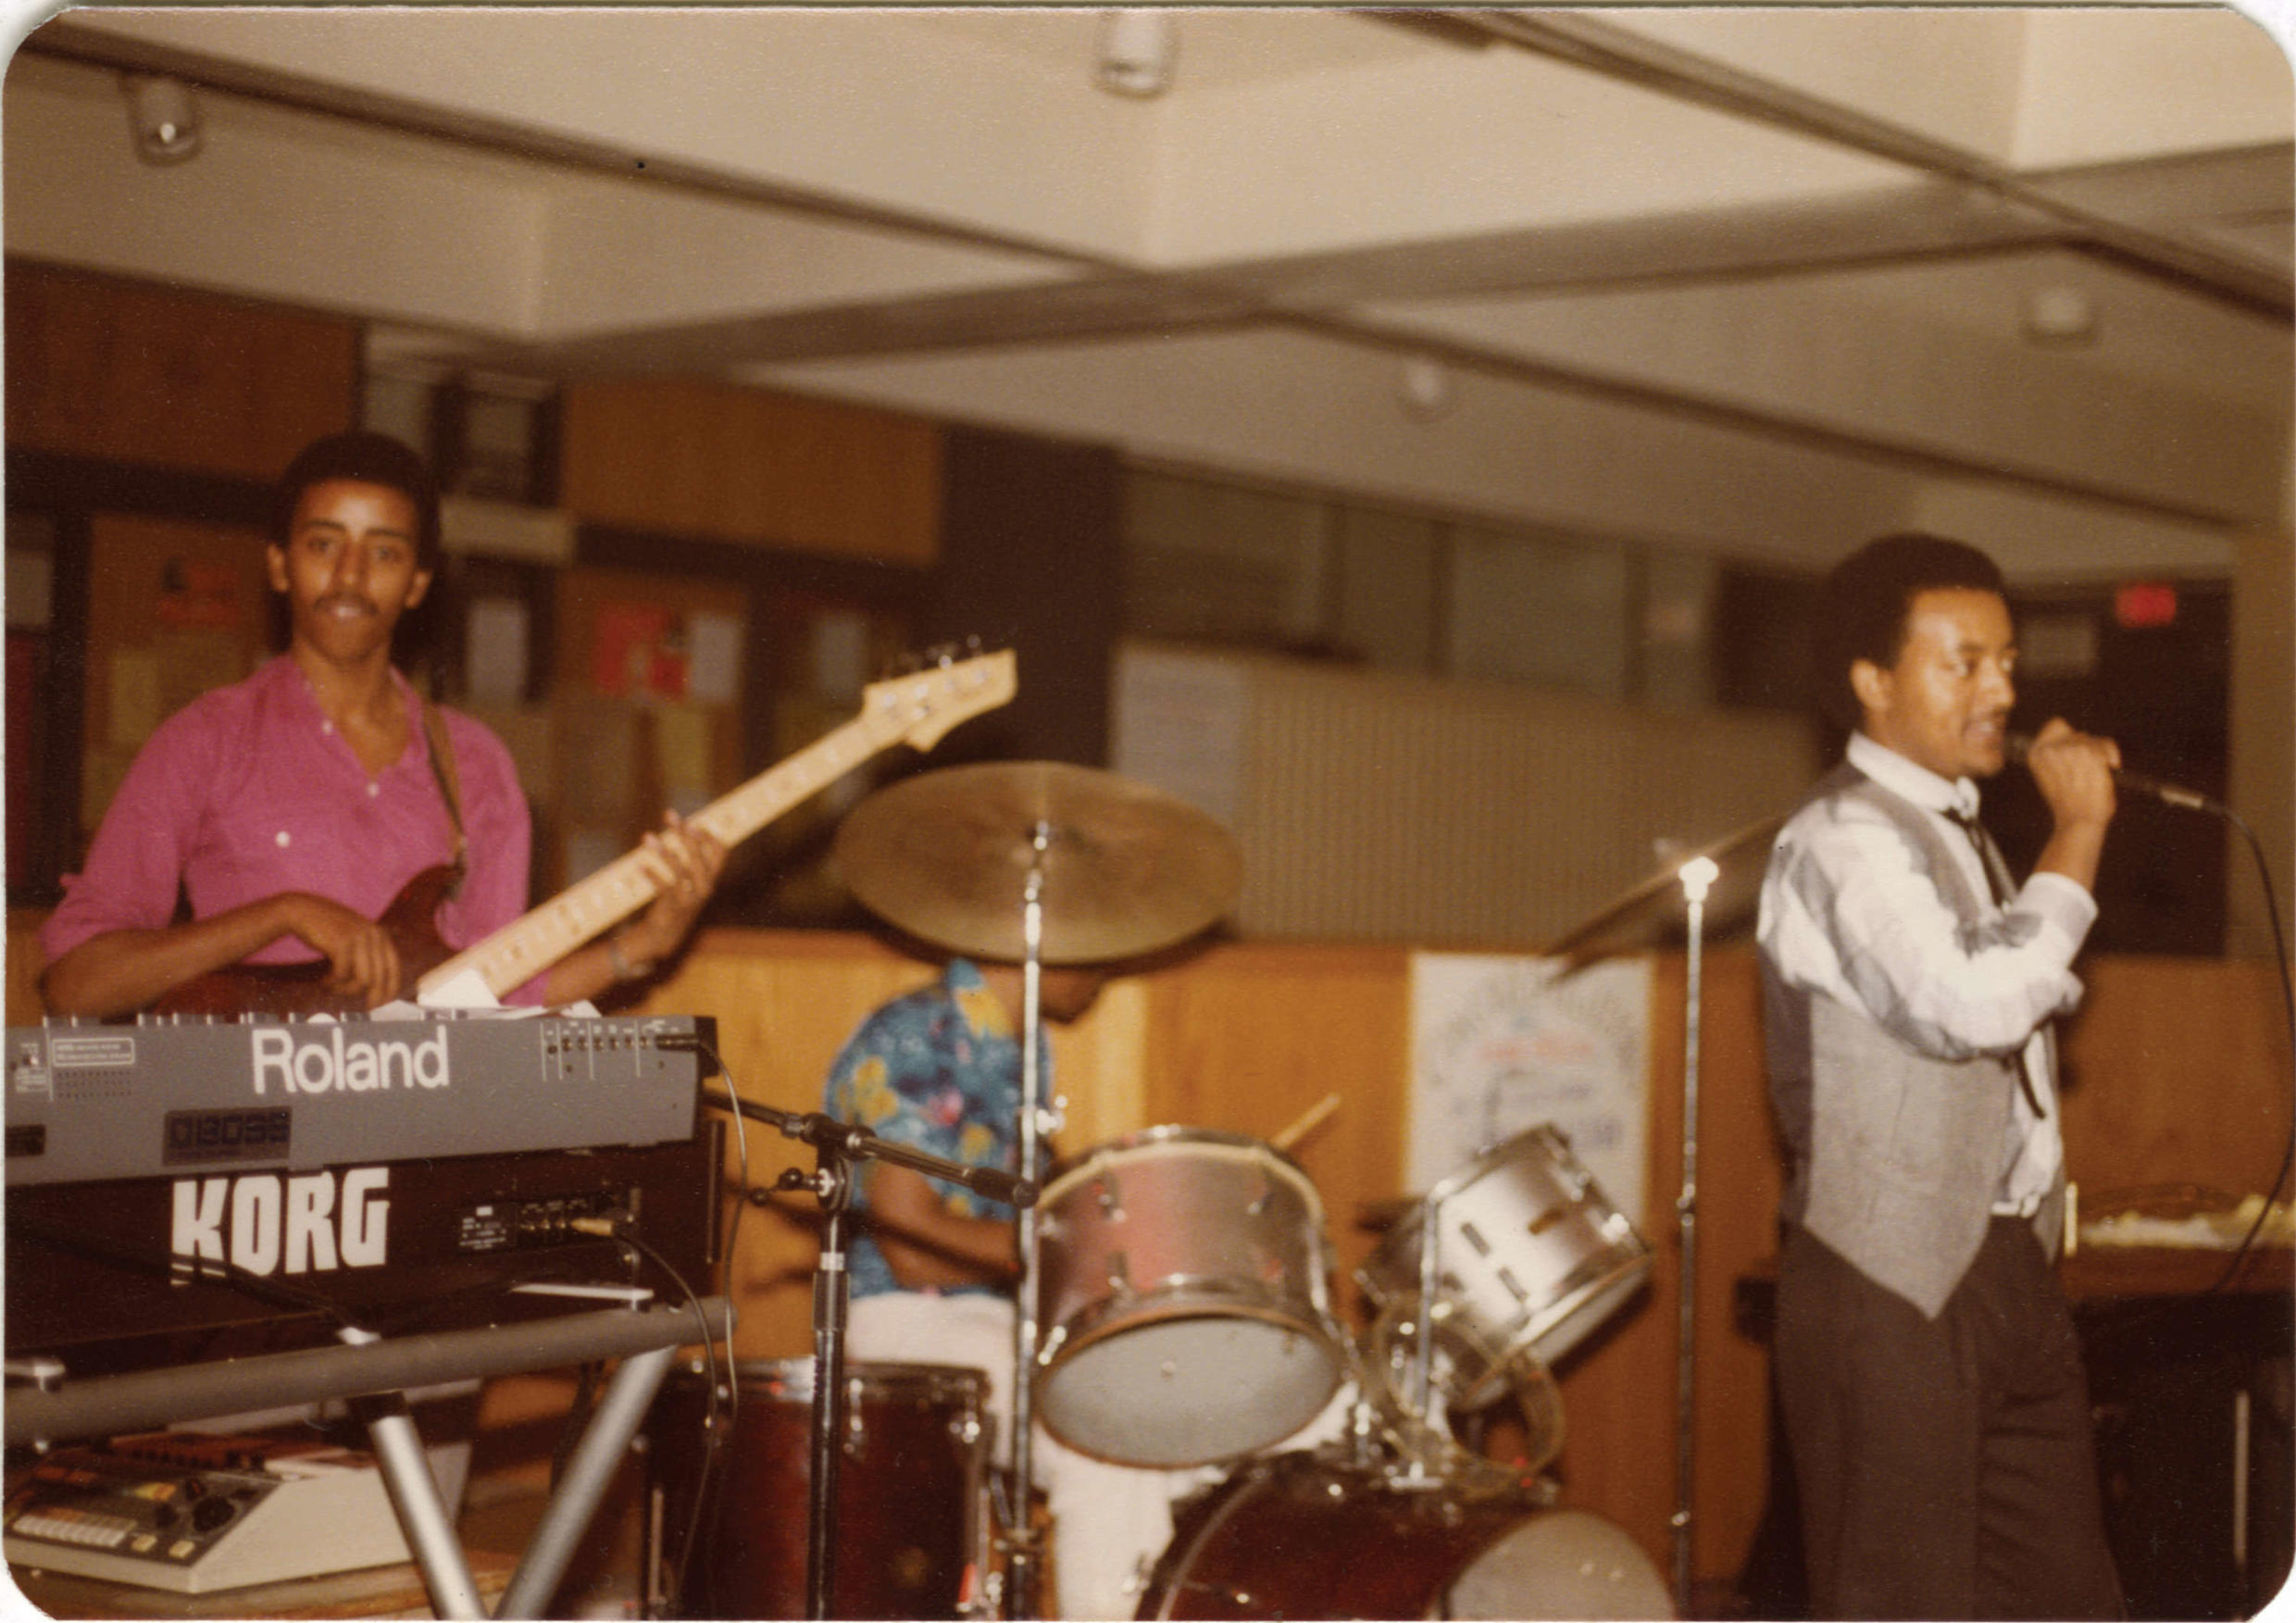 Admas played regularly for the Ethiopian expatriate community, many of whom had fled to Washington to escape the terror of the Derg. This photo shows Henock on bass, Yousef on drums and guest vocalist Simeon Beyene.